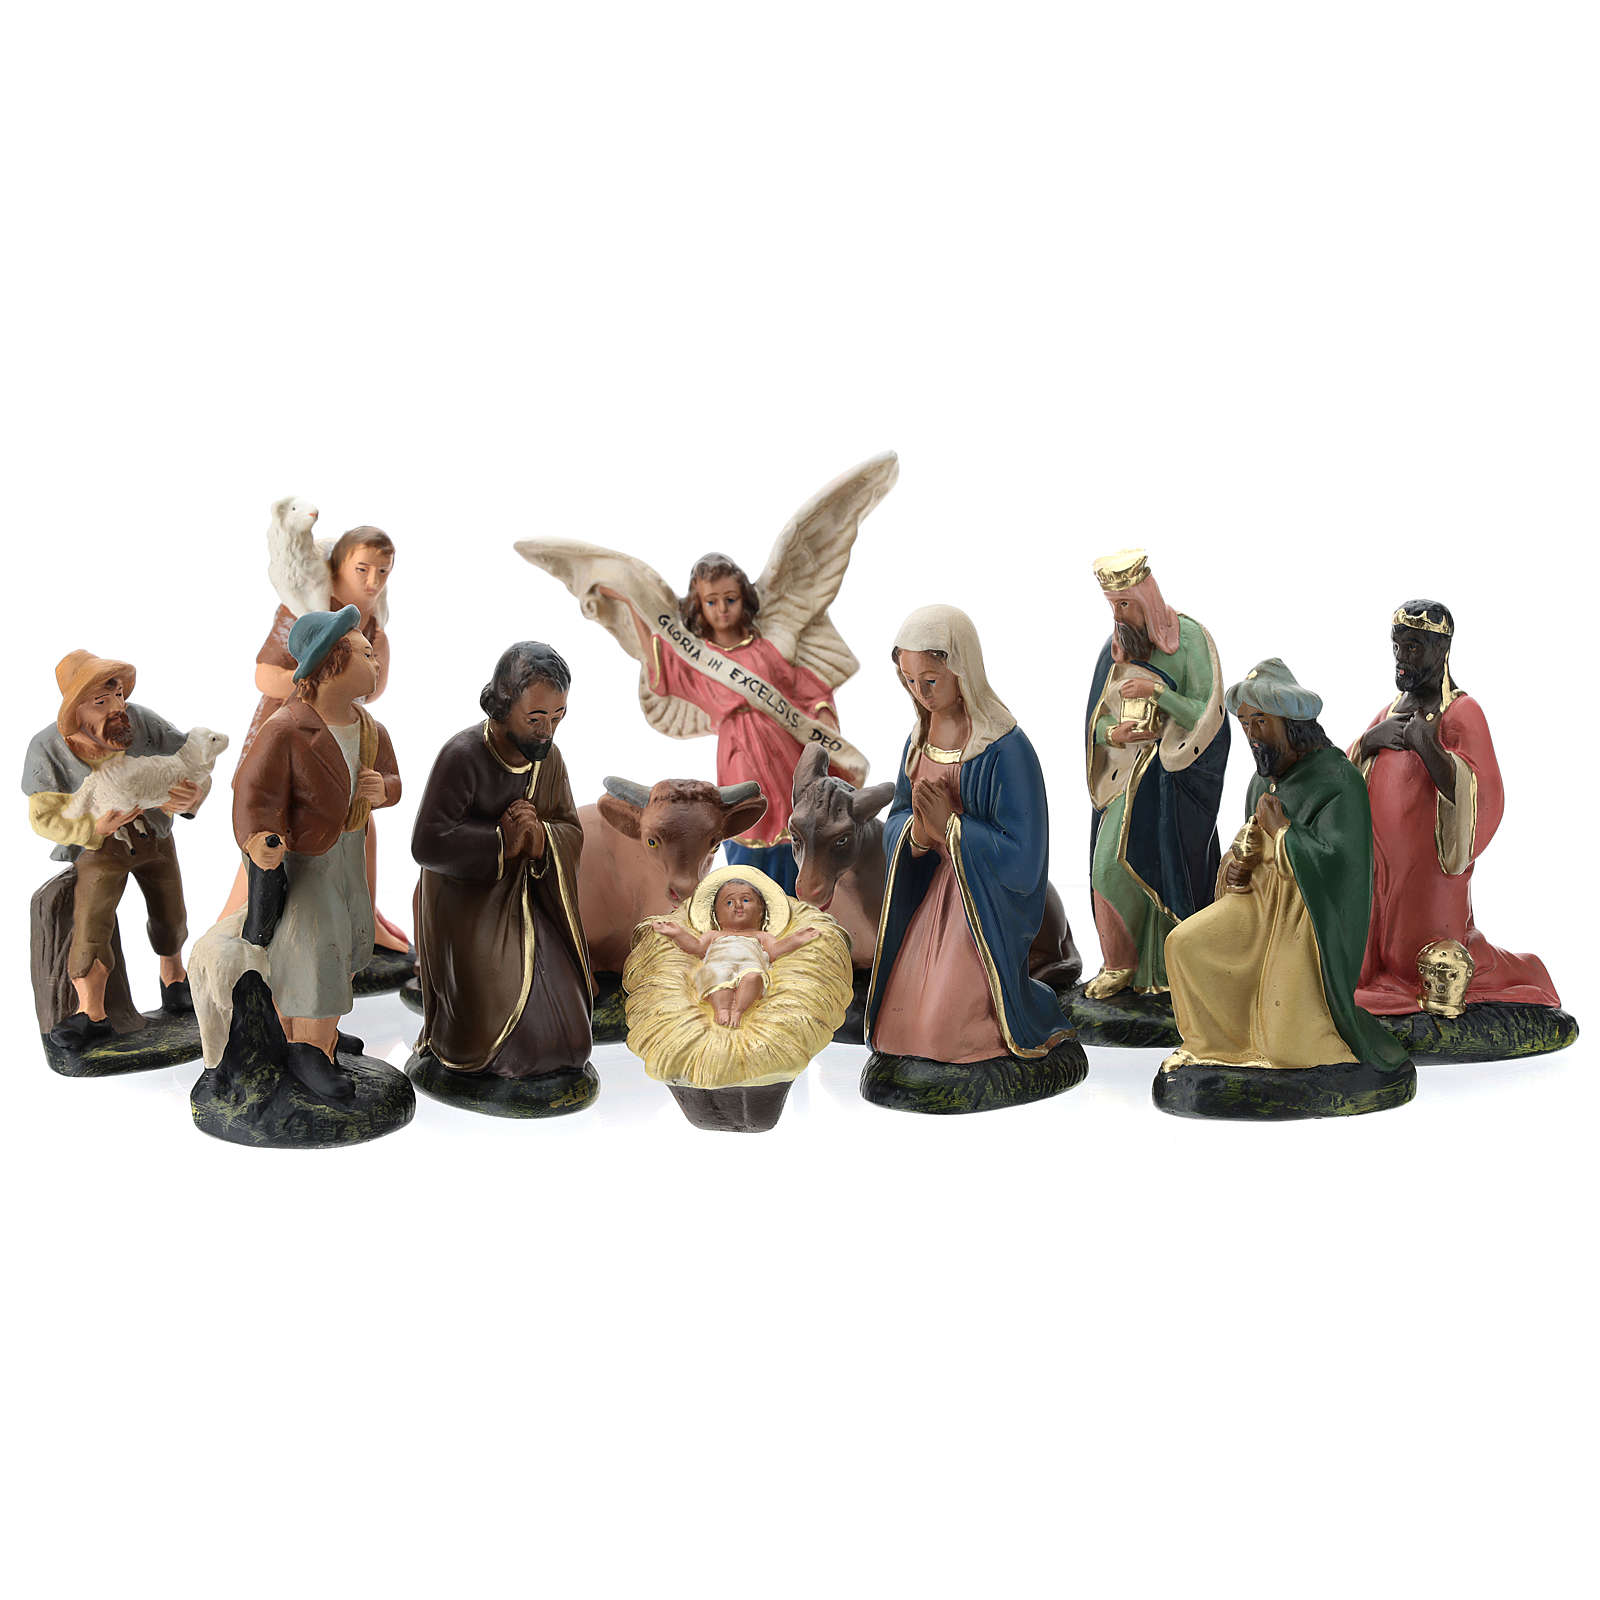 Arte Barsanti Nativity Scene with 12 hand-painted characters in plaster 15 cm 4